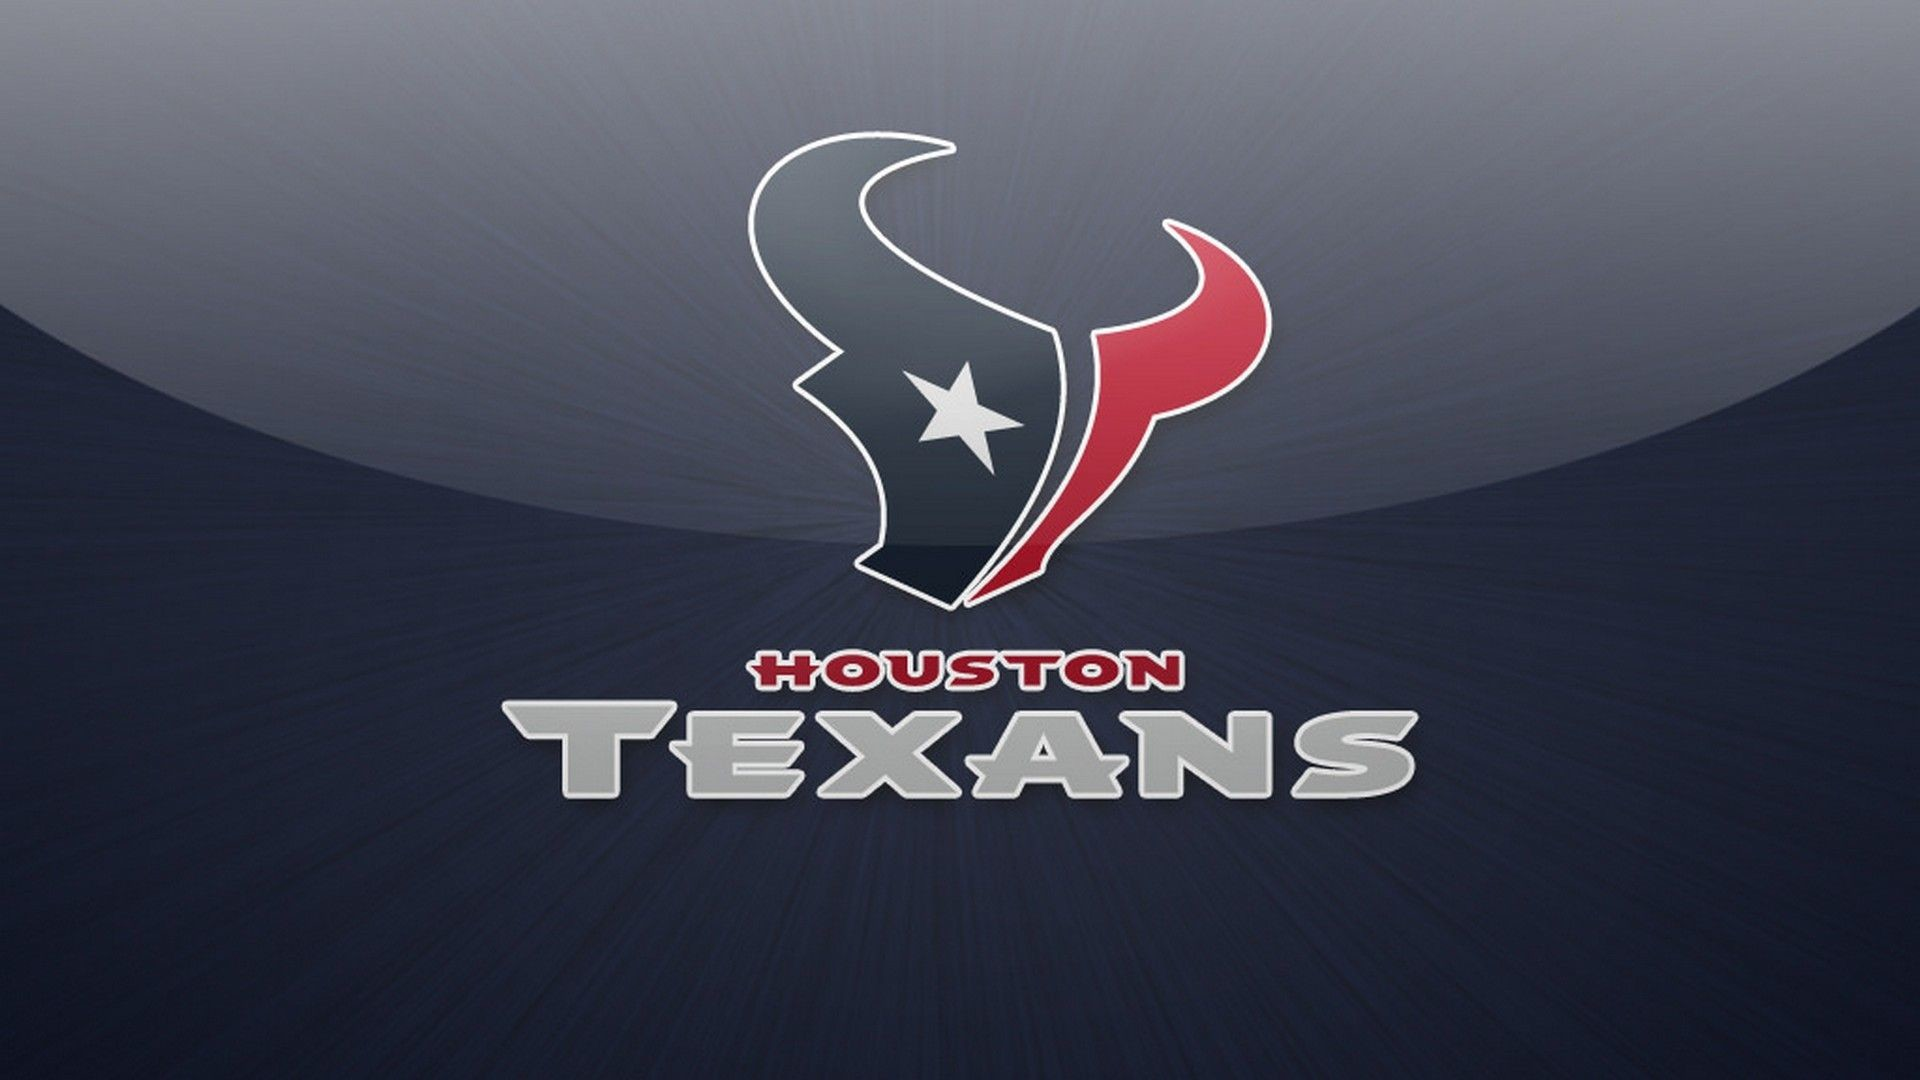 1920x1080 Wallpapers HD Houston Texans | Best NFL Wallpapers